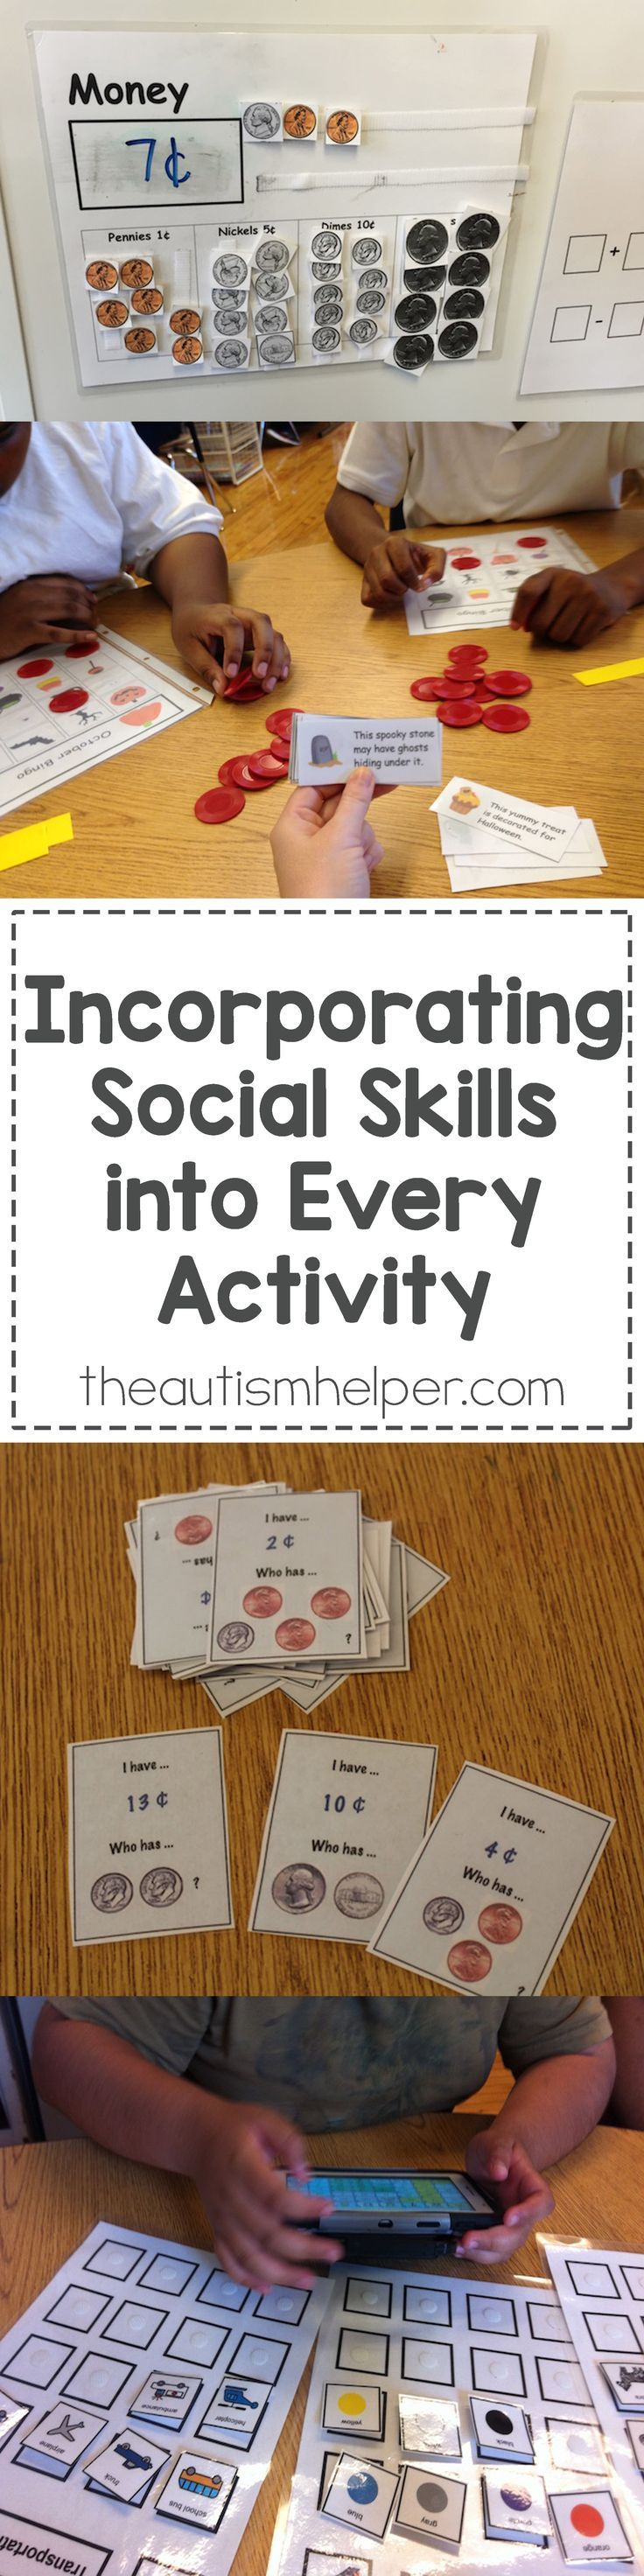 Learn how to incorporate social skills into your every day activity!! From theautismhelper.com #theautismhelper